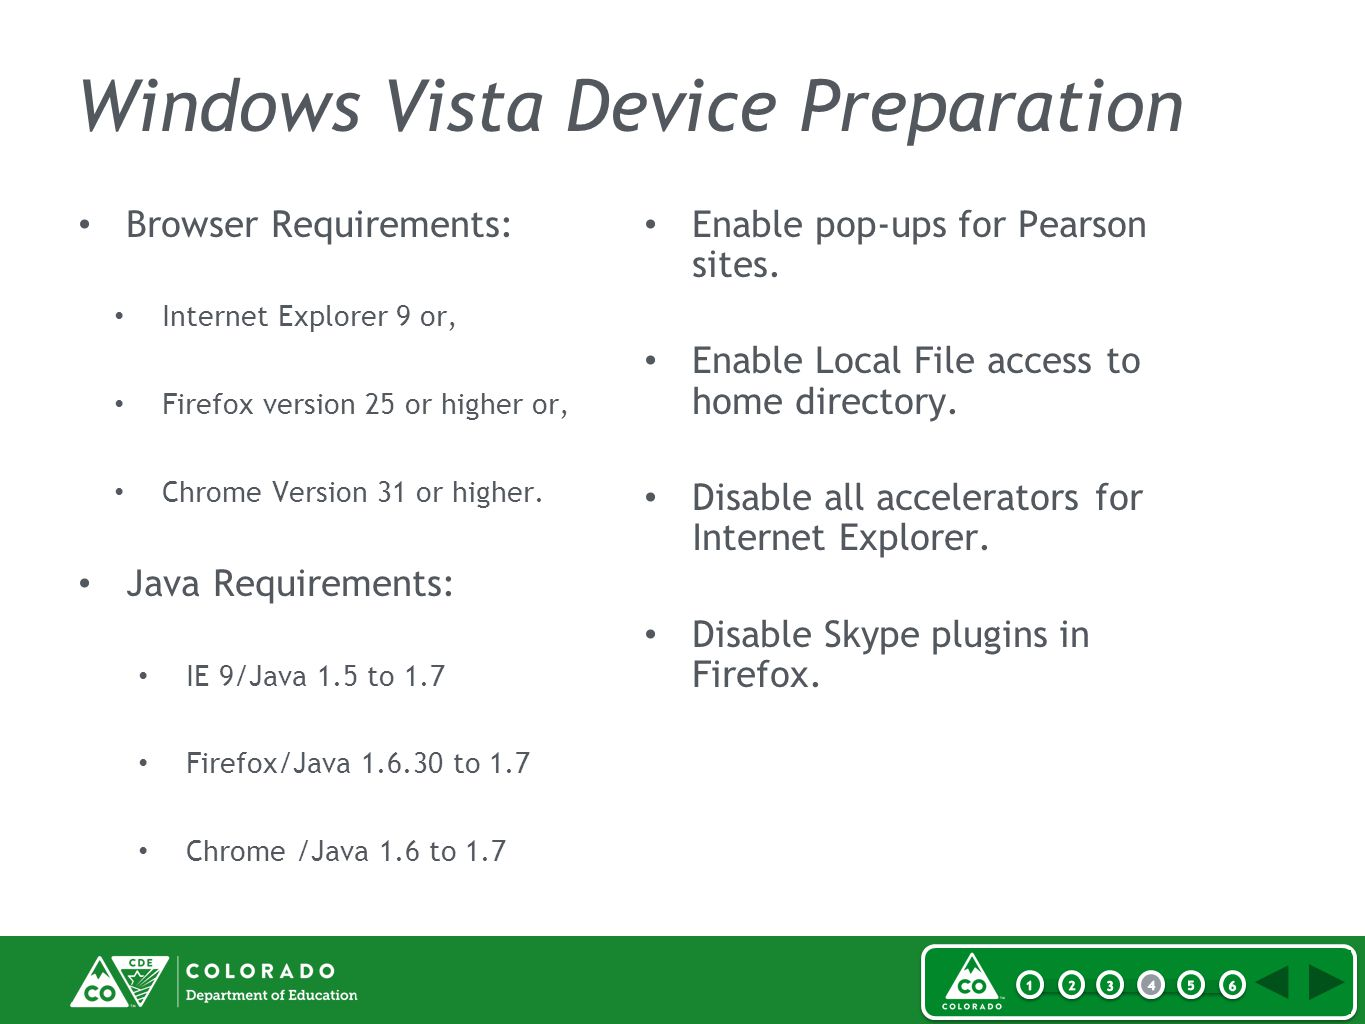 Windows Vista Device Preparation Browser Requirements: Internet Explorer 9 or, Firefox version 25 or higher or, Chrome Version 31 or higher.